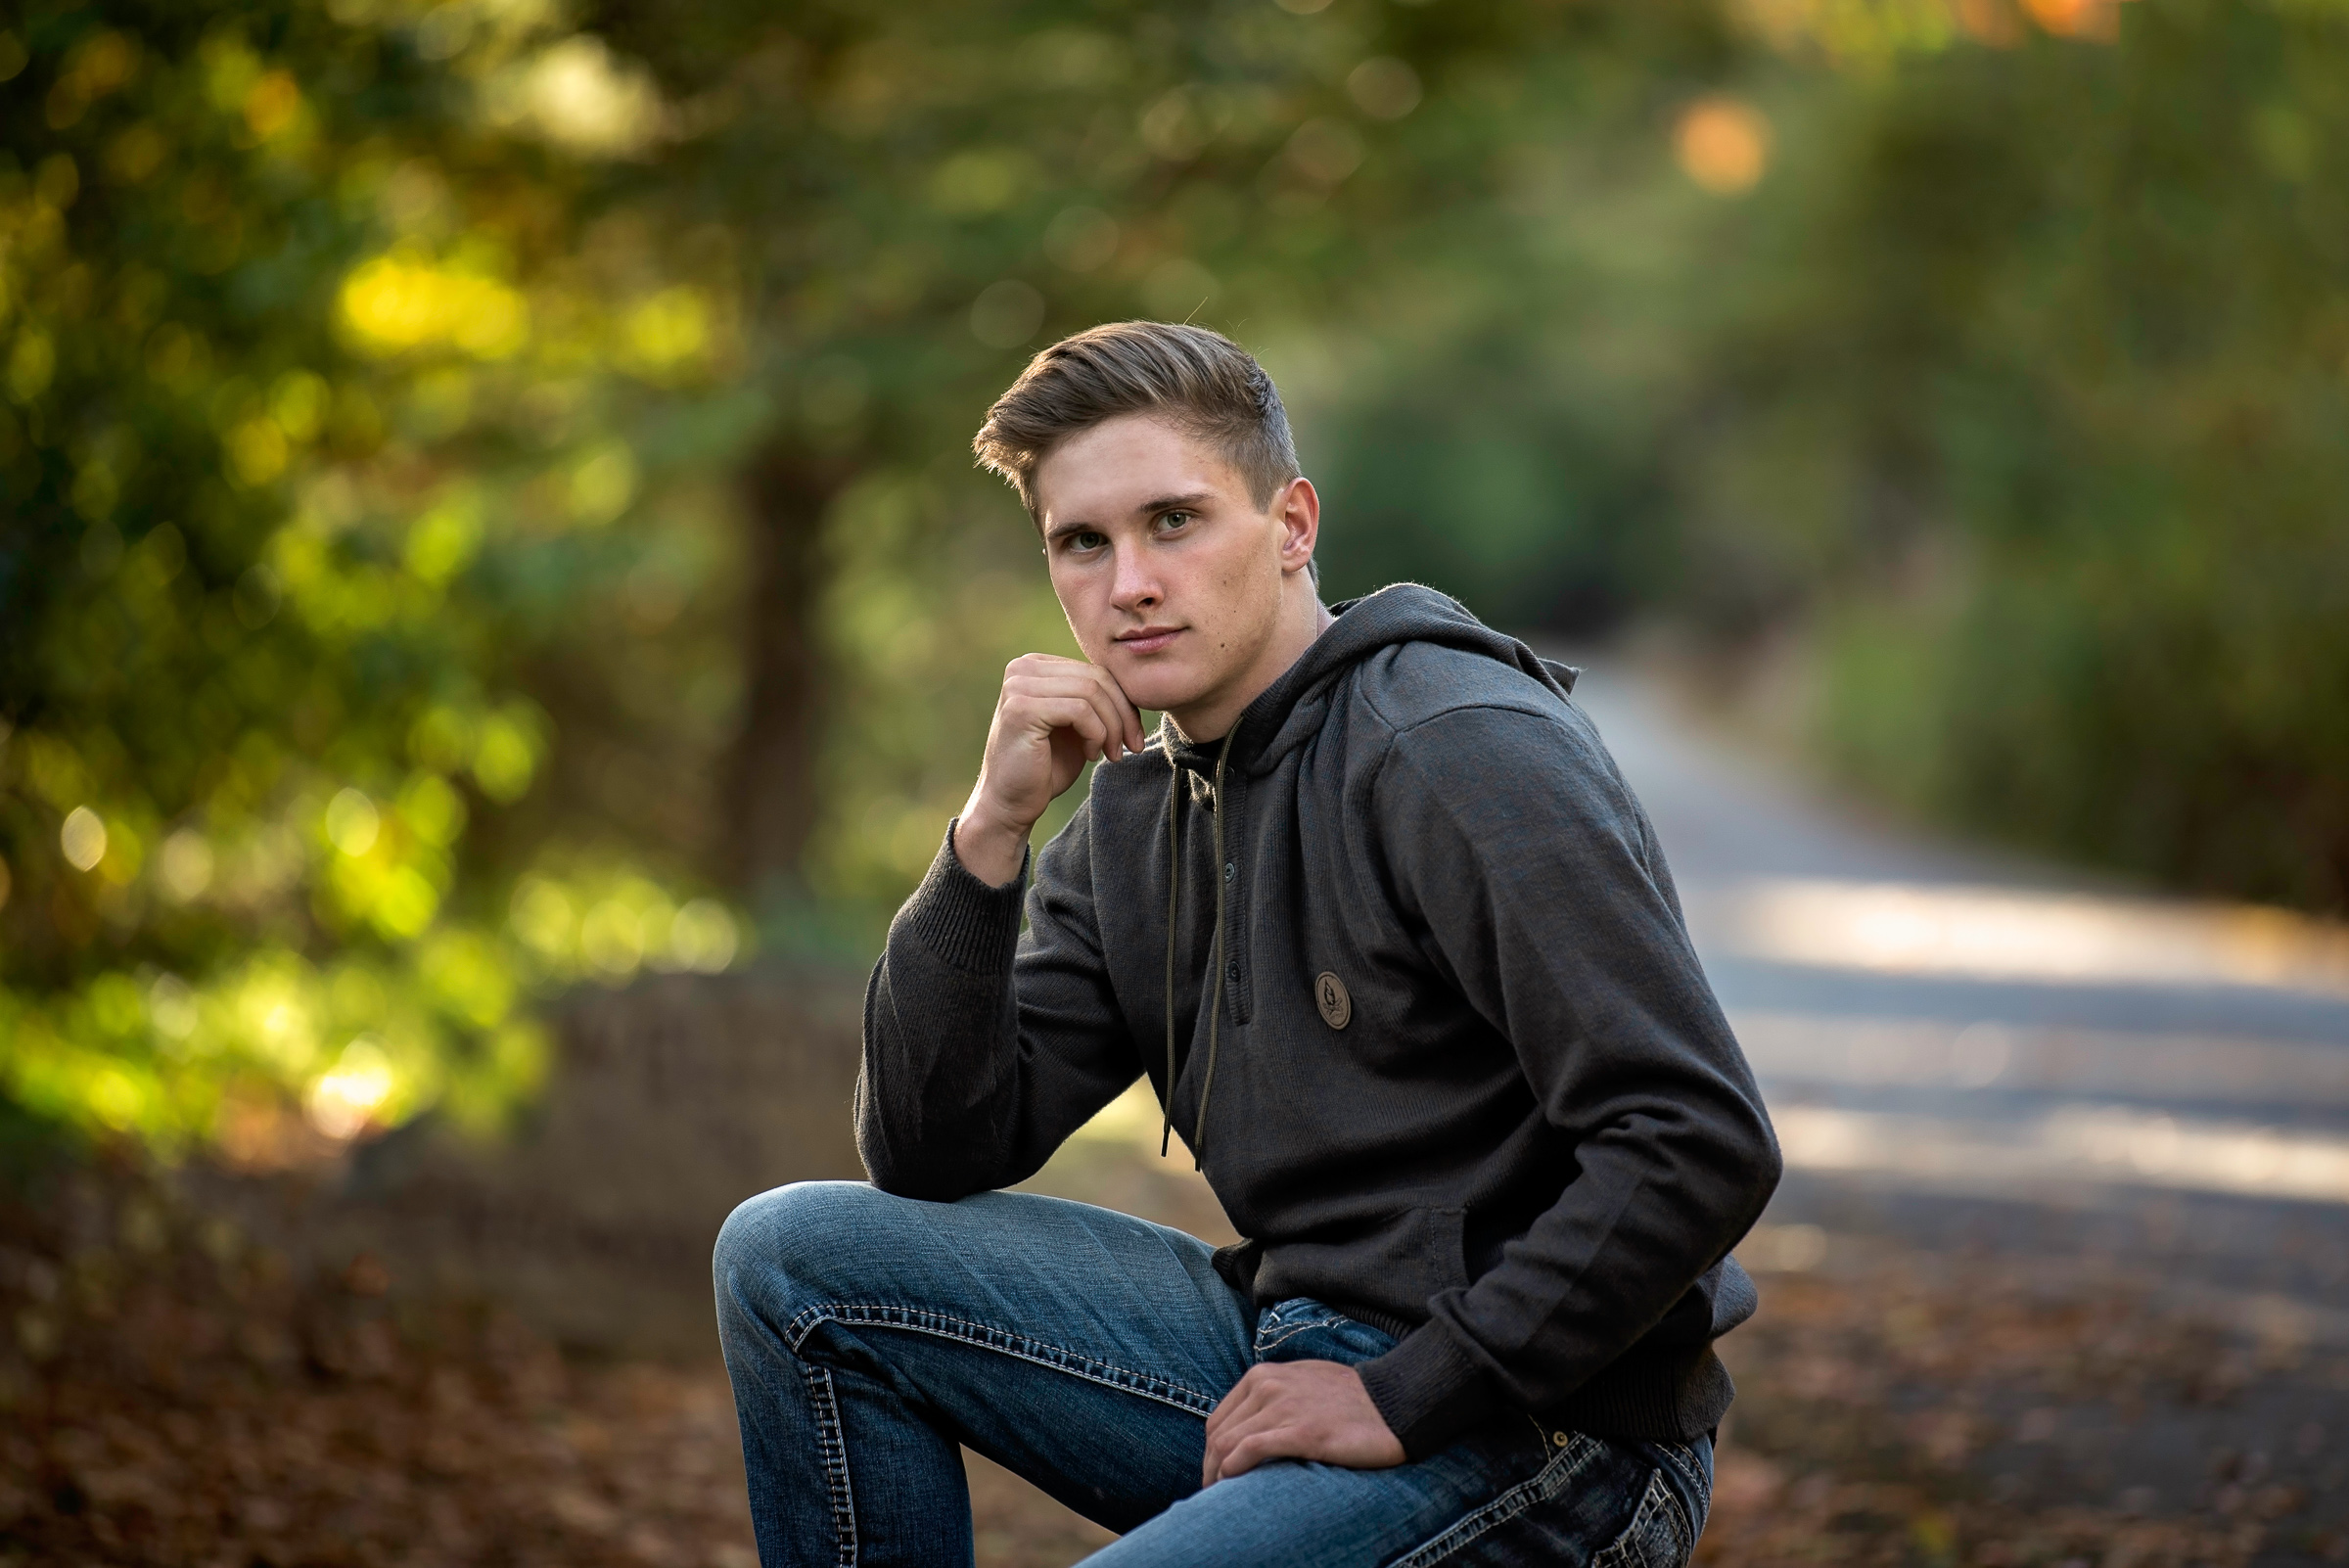 Cody's-Benbow Inn-Humboldt County-Senior Session-Parky's Pics_-17.JPG